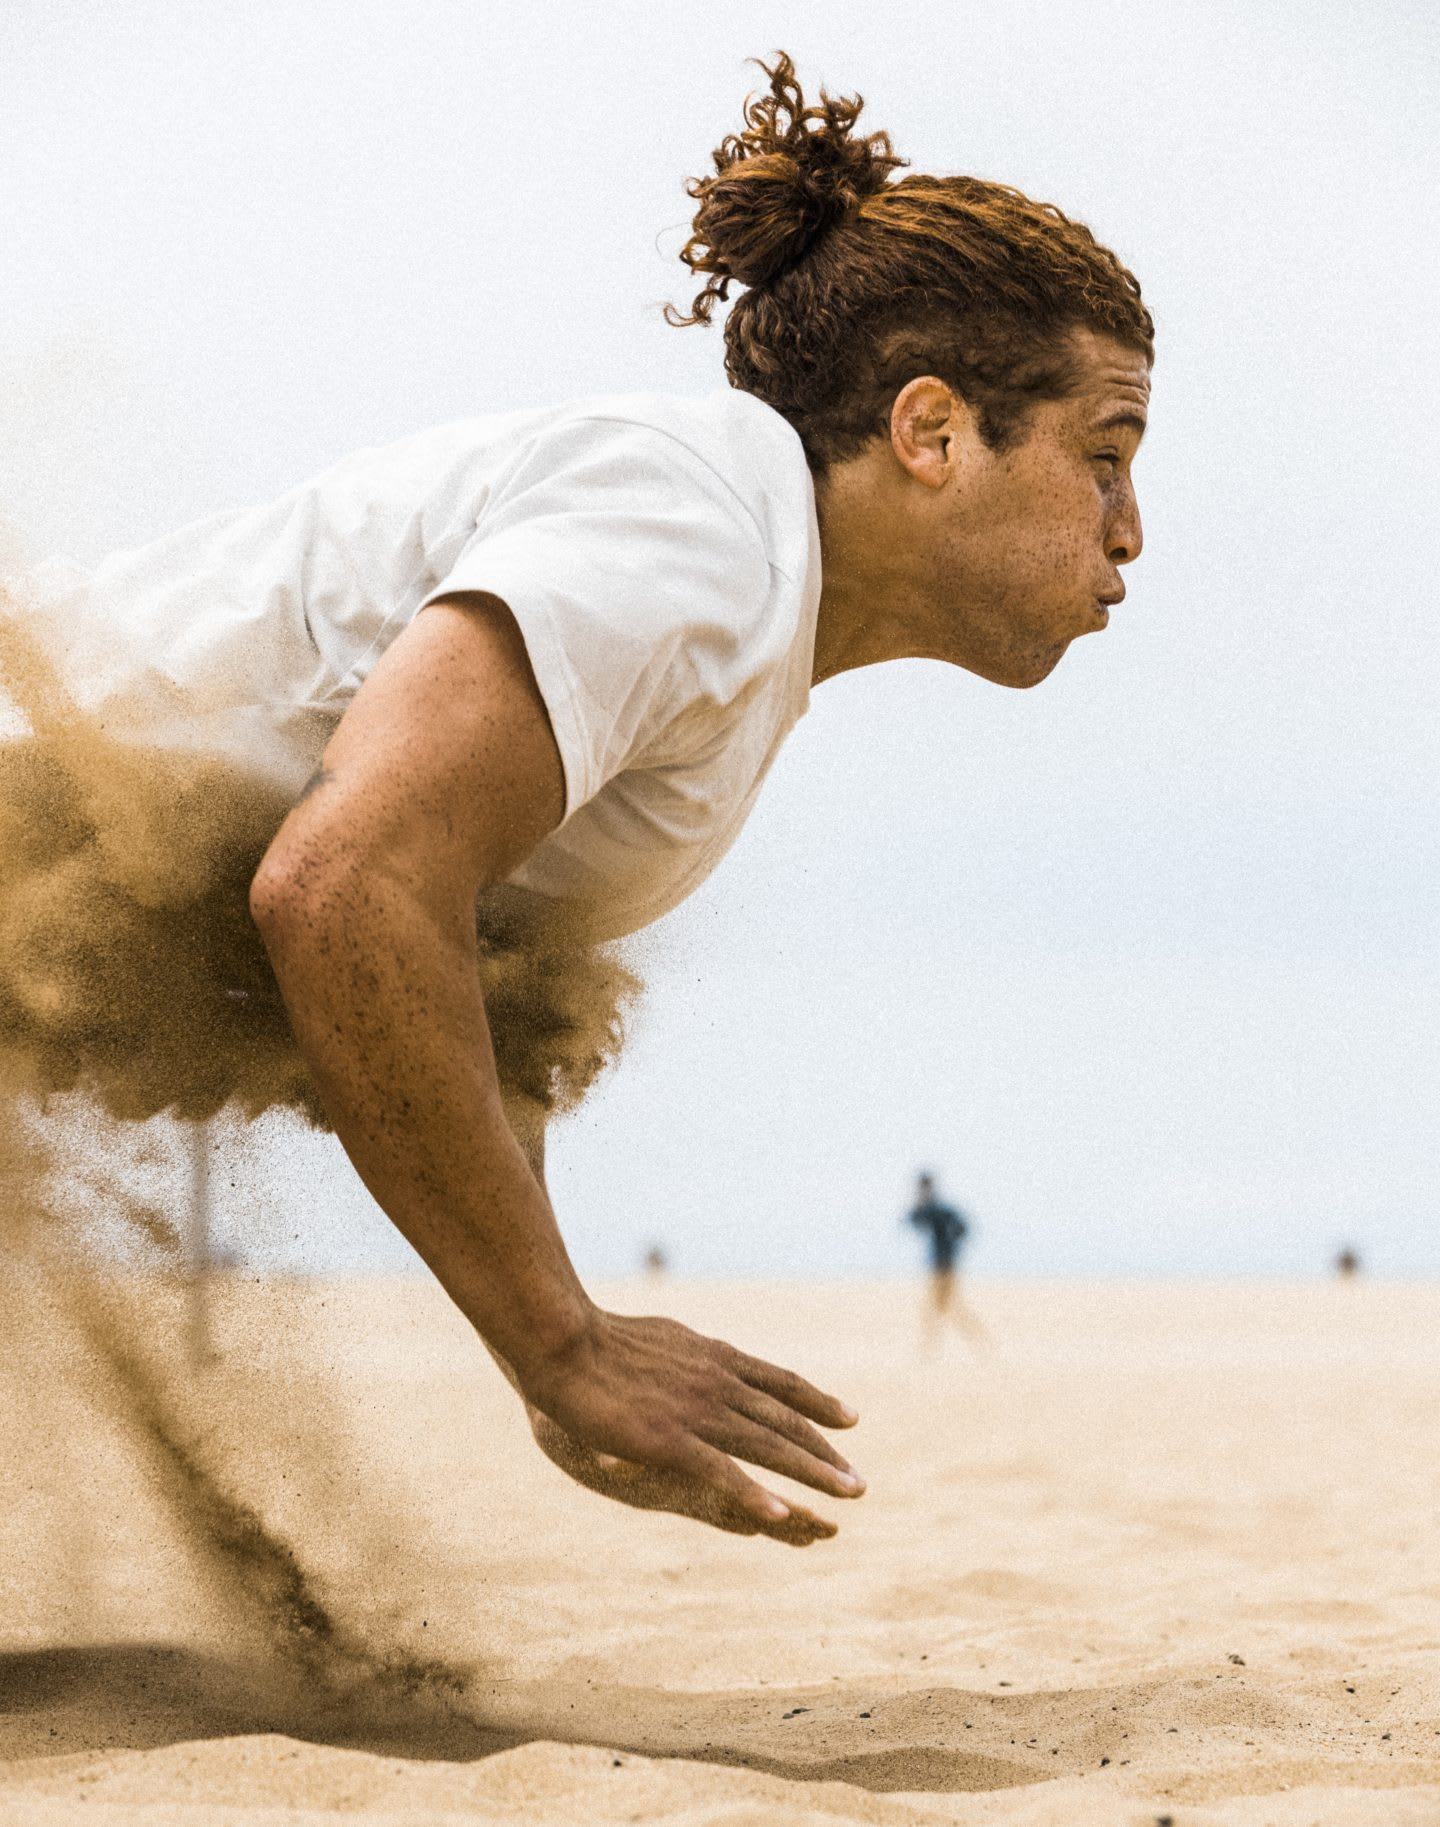 Man doing clapping push ups on the sand, motivation, commitment, performance, purpose, goals, gymnastics, adidas, GamePlan A